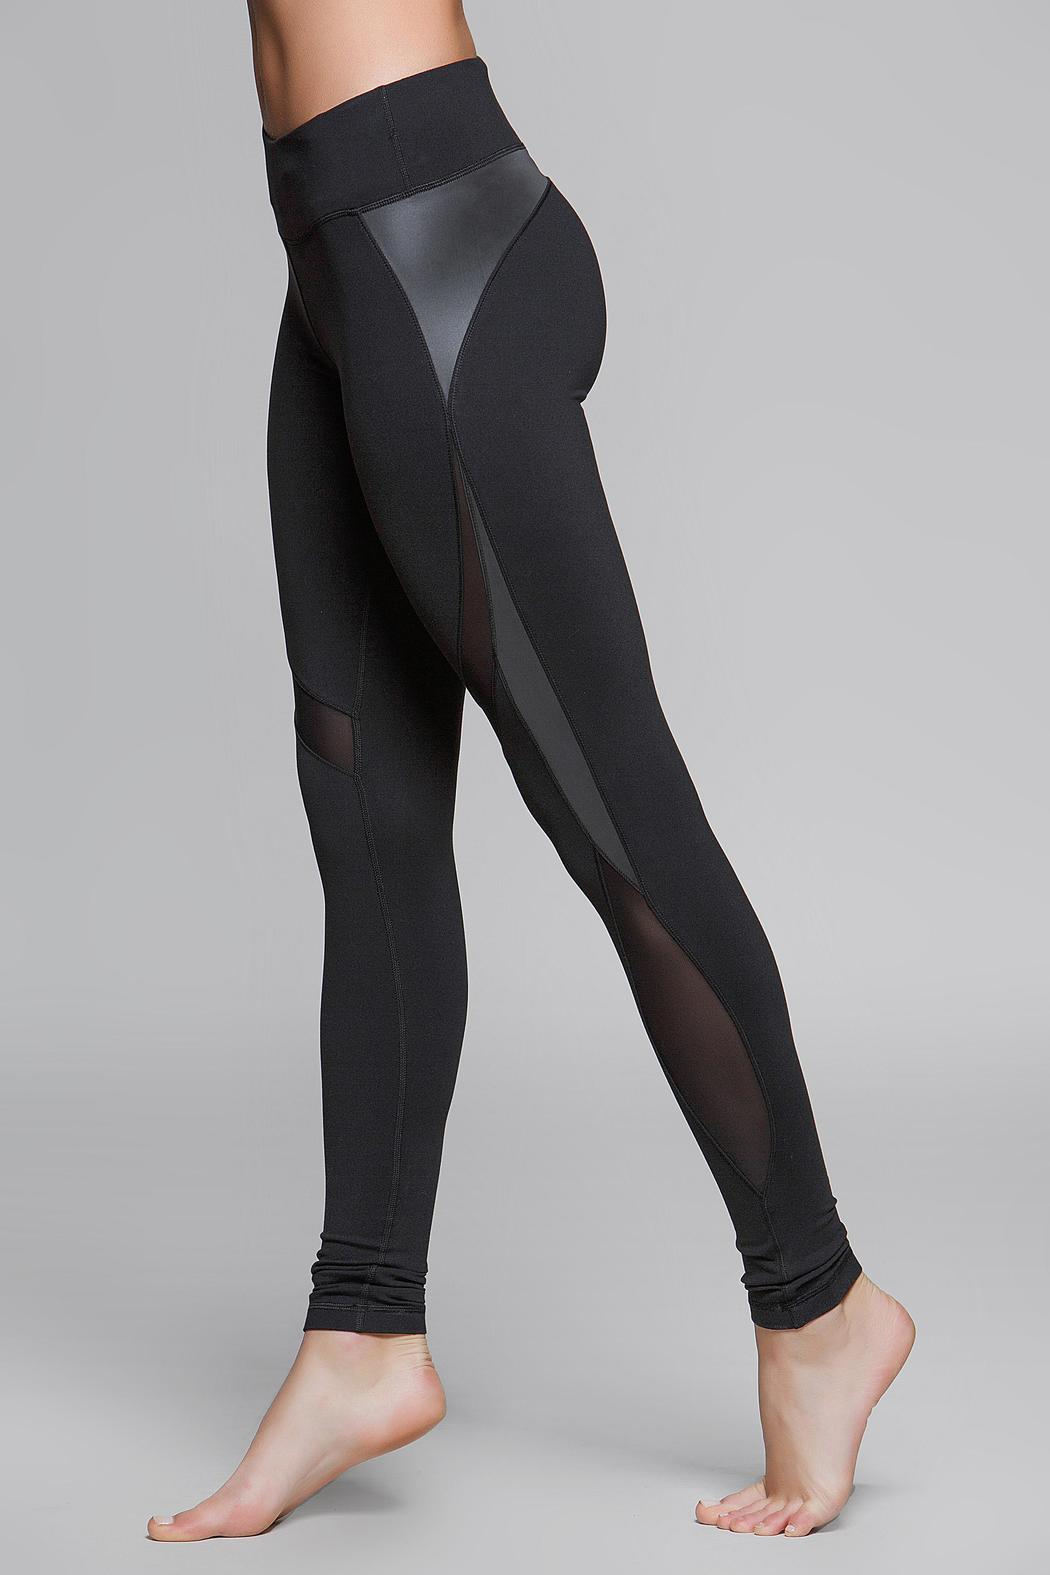 Titika Active Couture Eclipse Reflective Legging - Side Cropped Image